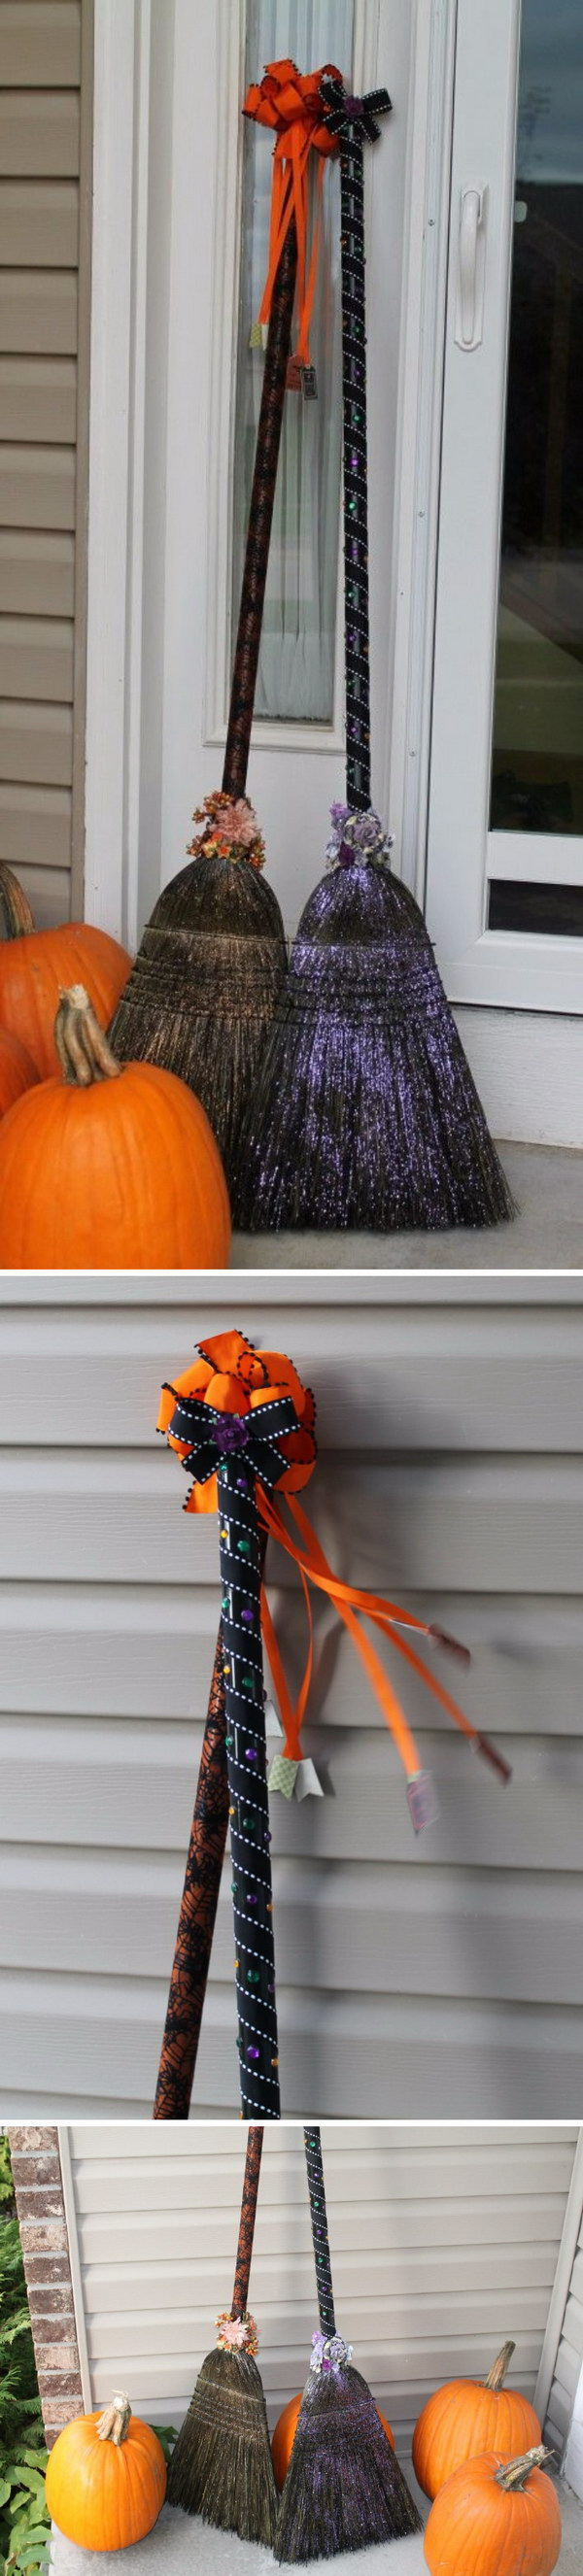 11 dollar store crafts for halloween - 30 Dollar Store DIY Projects for Halloween